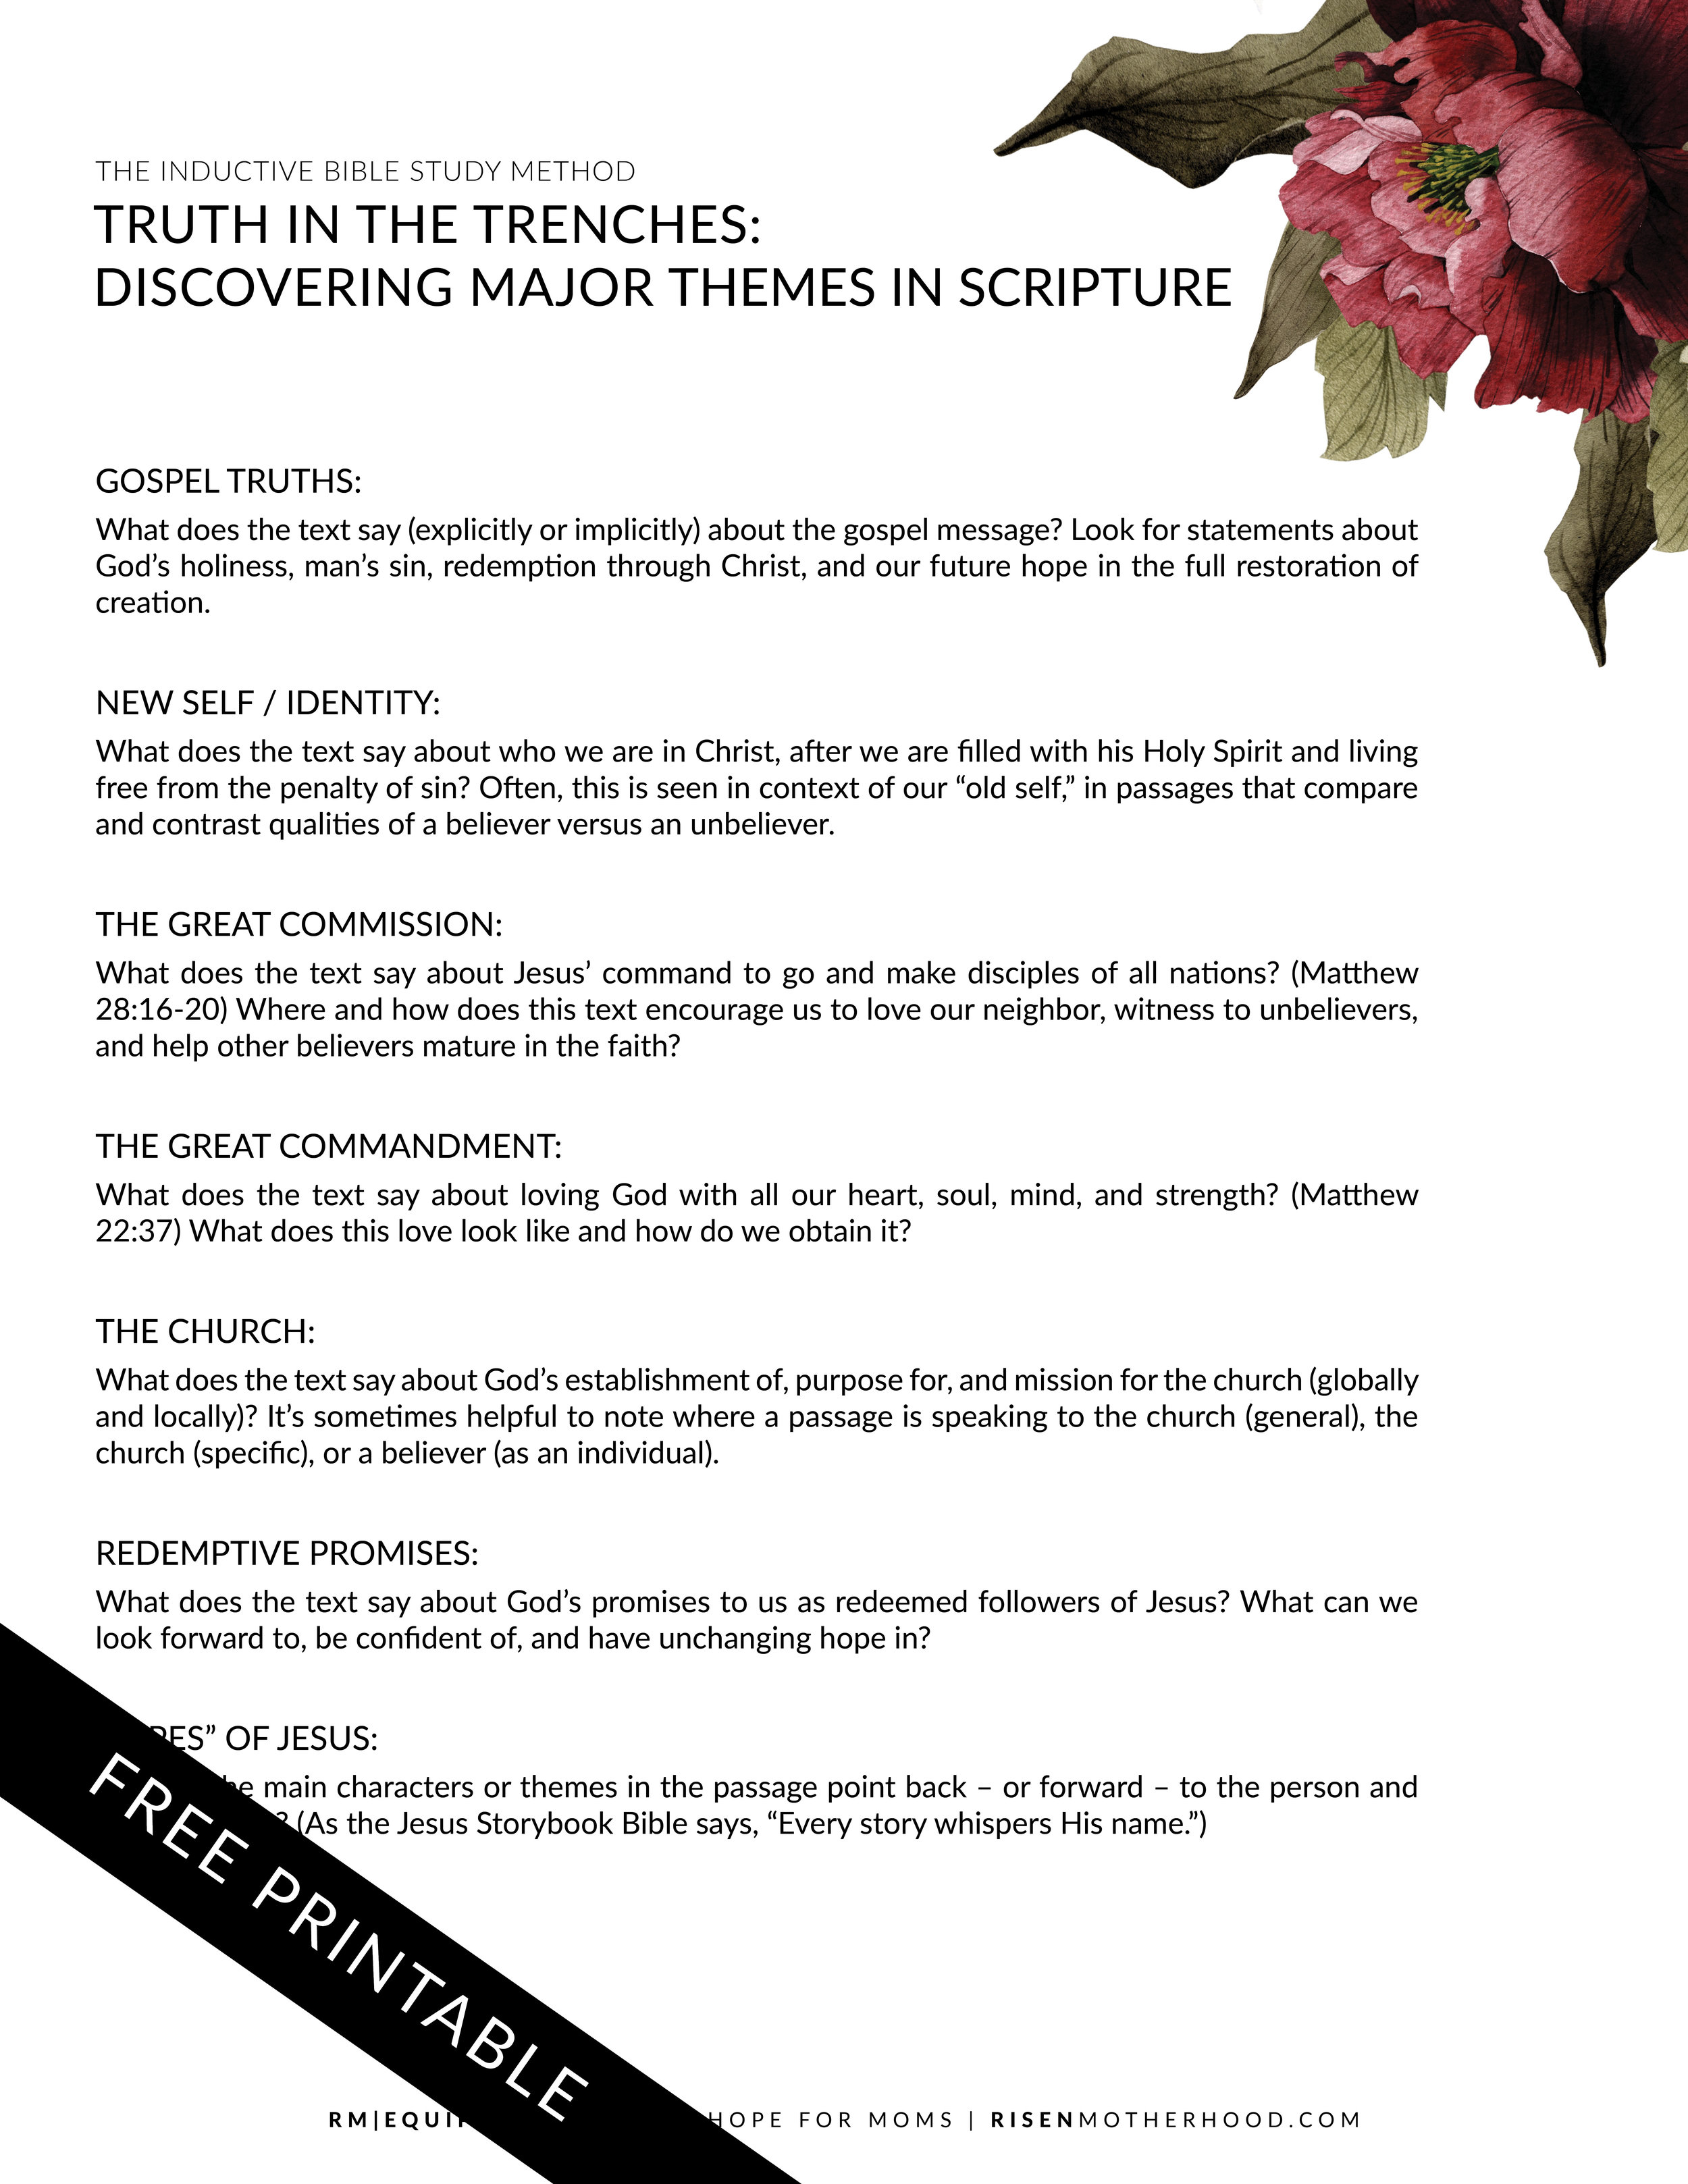 Gospel Themes with Markup2.jpg